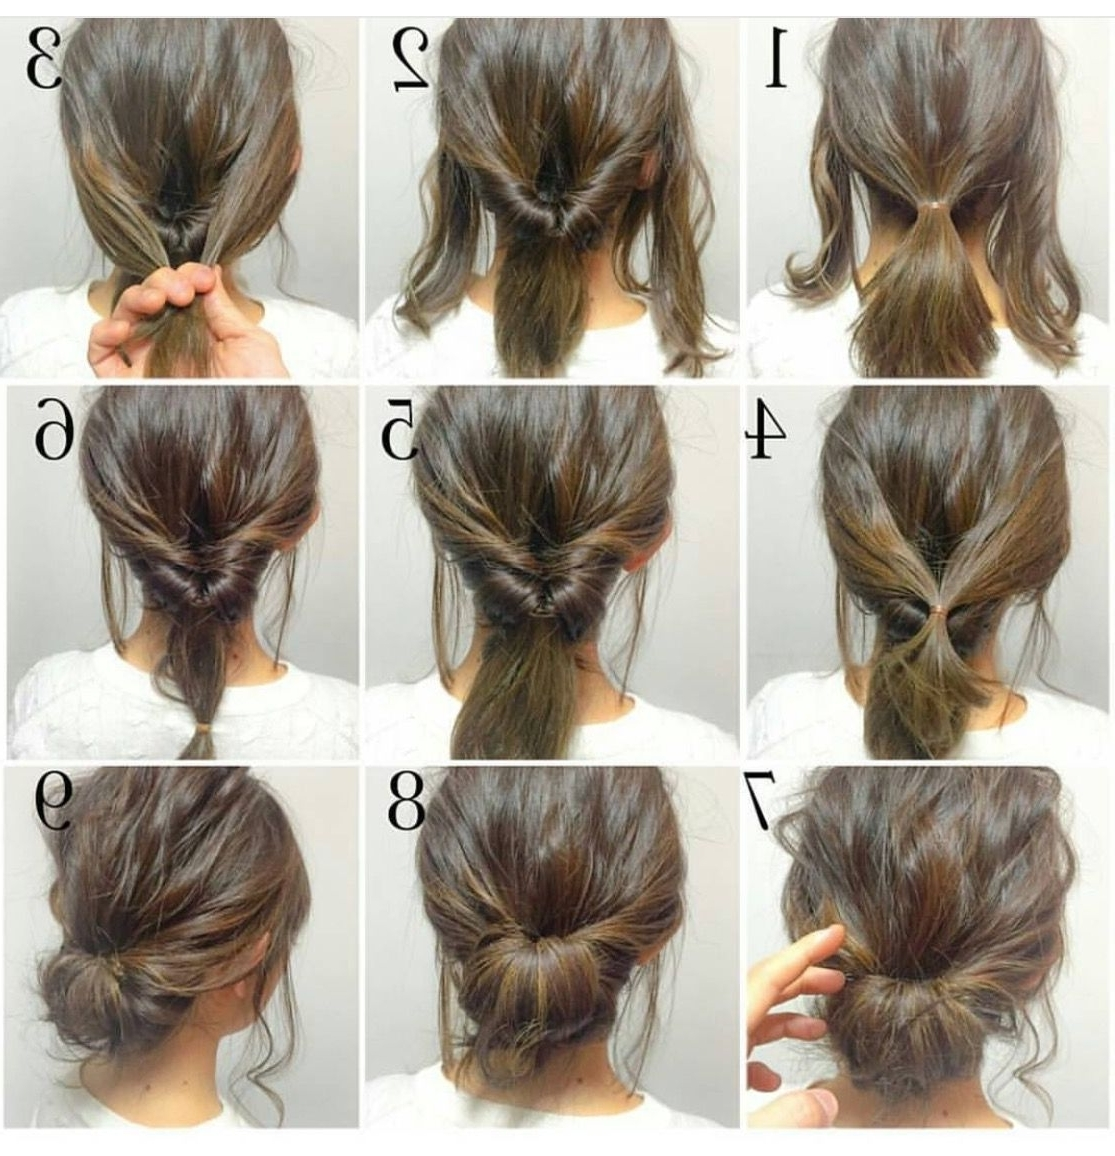 4 Messy Updos For Long Hair | Hairz | Pinterest | Updos, Hair Style With Low Messy Updo Hairstyles (View 7 of 15)